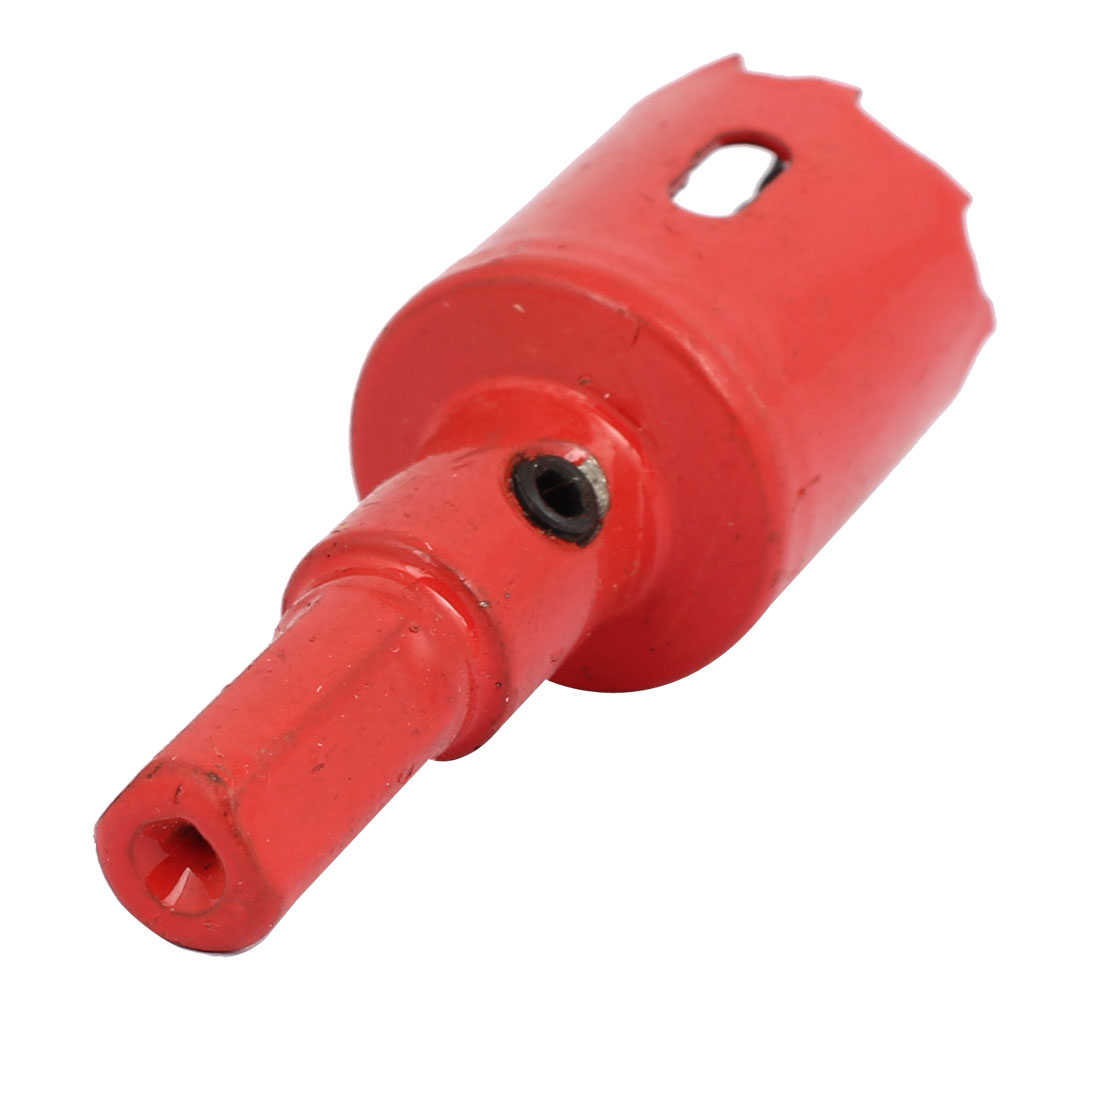 25mm Cutting Dia M42 HSS Spring Loaded Bi-Metal Hole Saw Drilling Tool Red